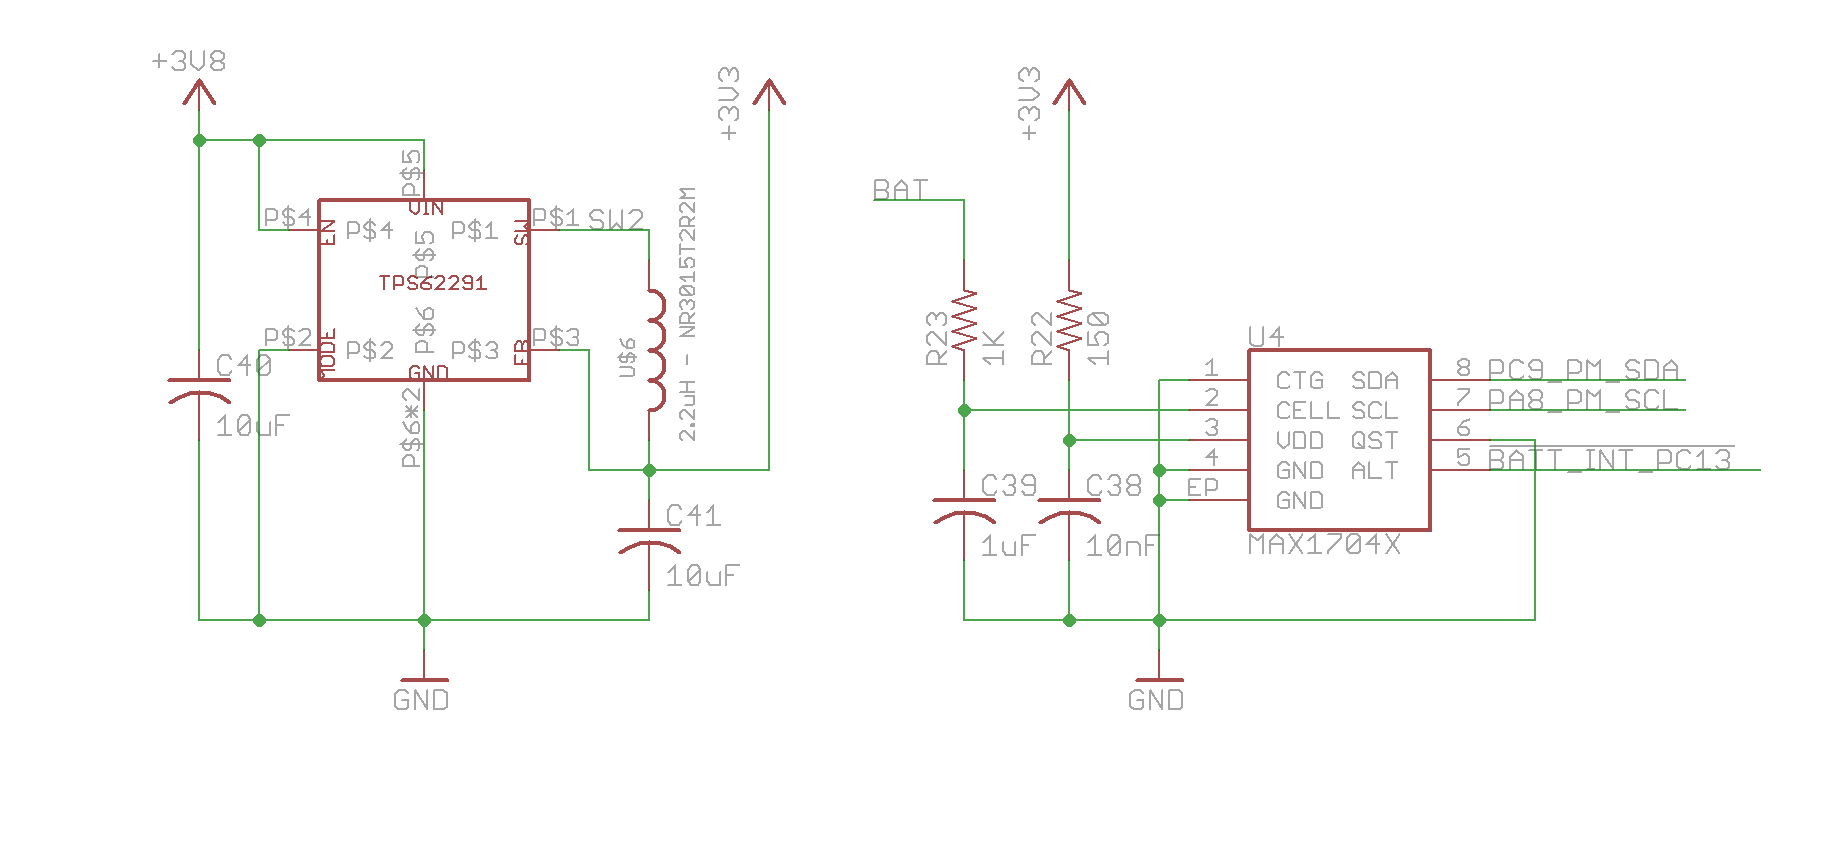 Cuk Converter Circuit Design Using Pic Microcontroller as well An Oscillator Of The 200 Watts Power Inverter also Prepping 101 Piecing Solar Power Systems moreover Electron Datasheet additionally How To Wire Two 24v Solar Panels In. on battery backup circuit diagram